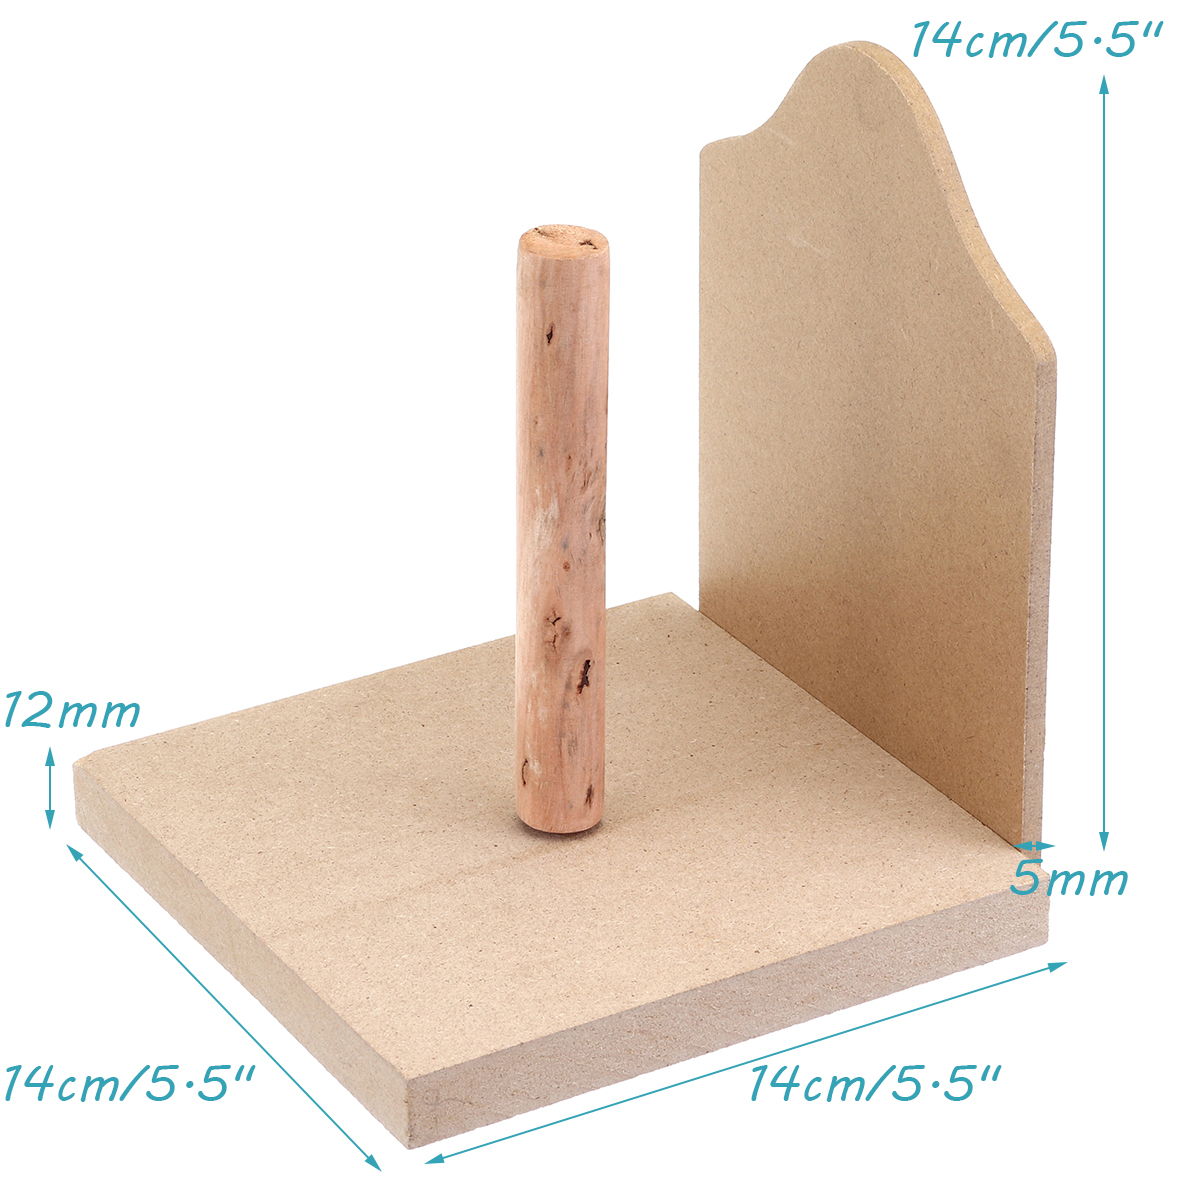 Toilet Loo Wooden Roll Paper Holder Bathroom Wall Mounted Roll Storage Rack Tissue Box